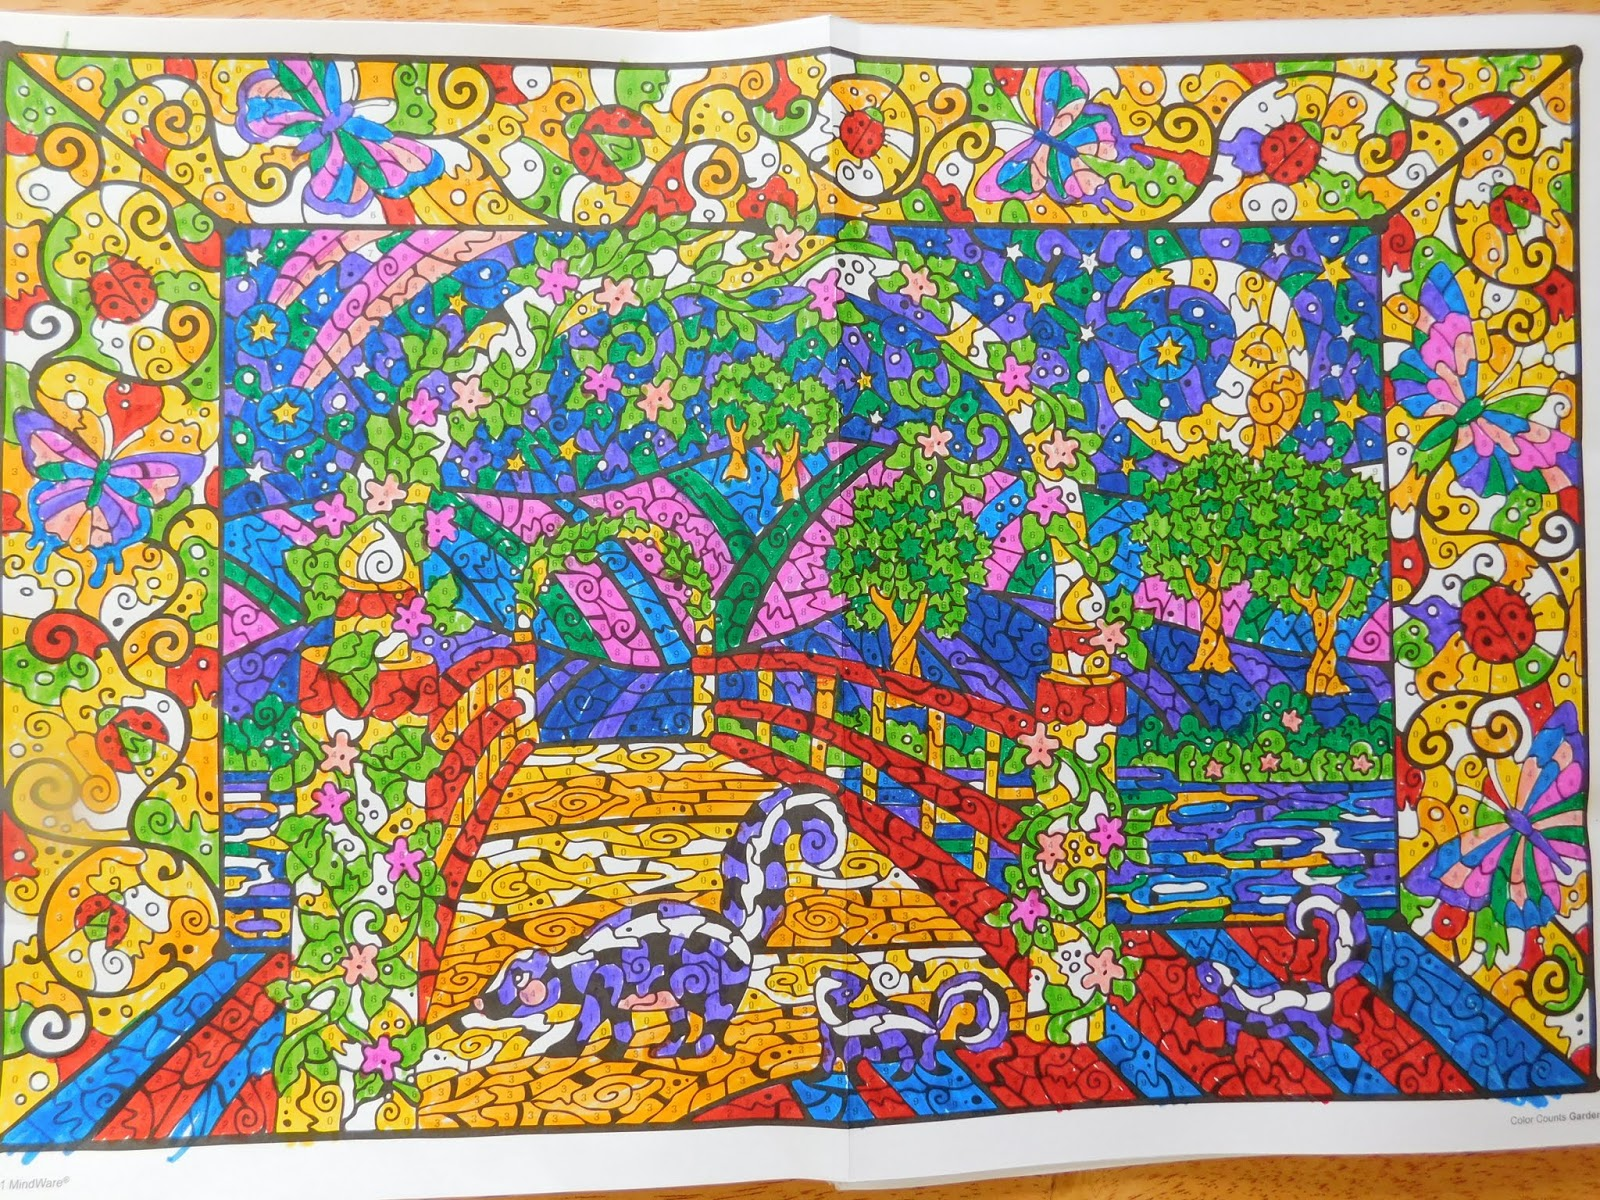 our unschooling journey through life art project 98 coloring